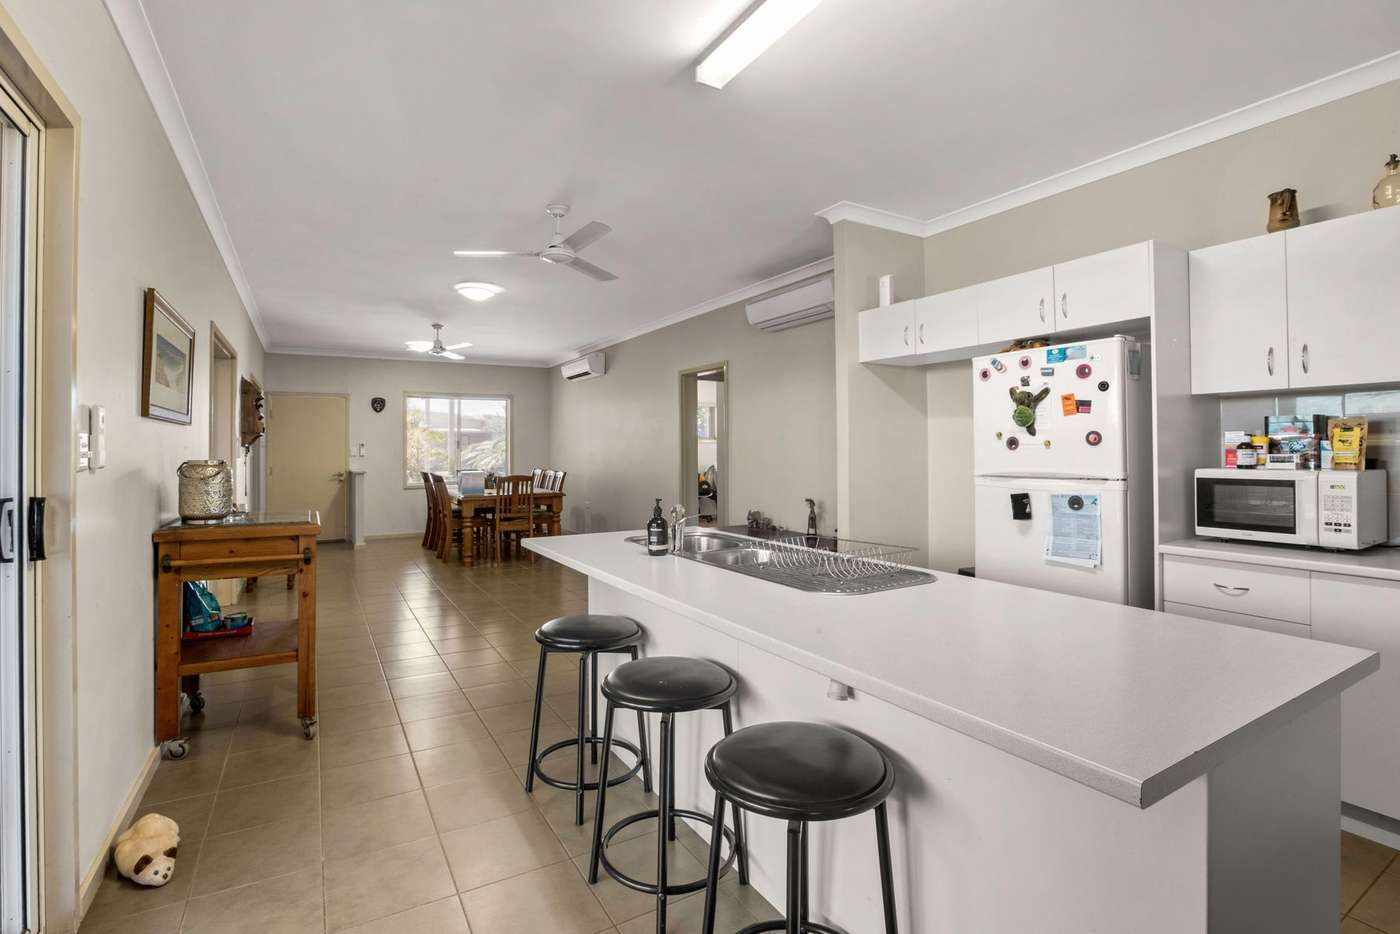 Main view of Homely house listing, 10 Bardurra Street, Baynton WA 6714